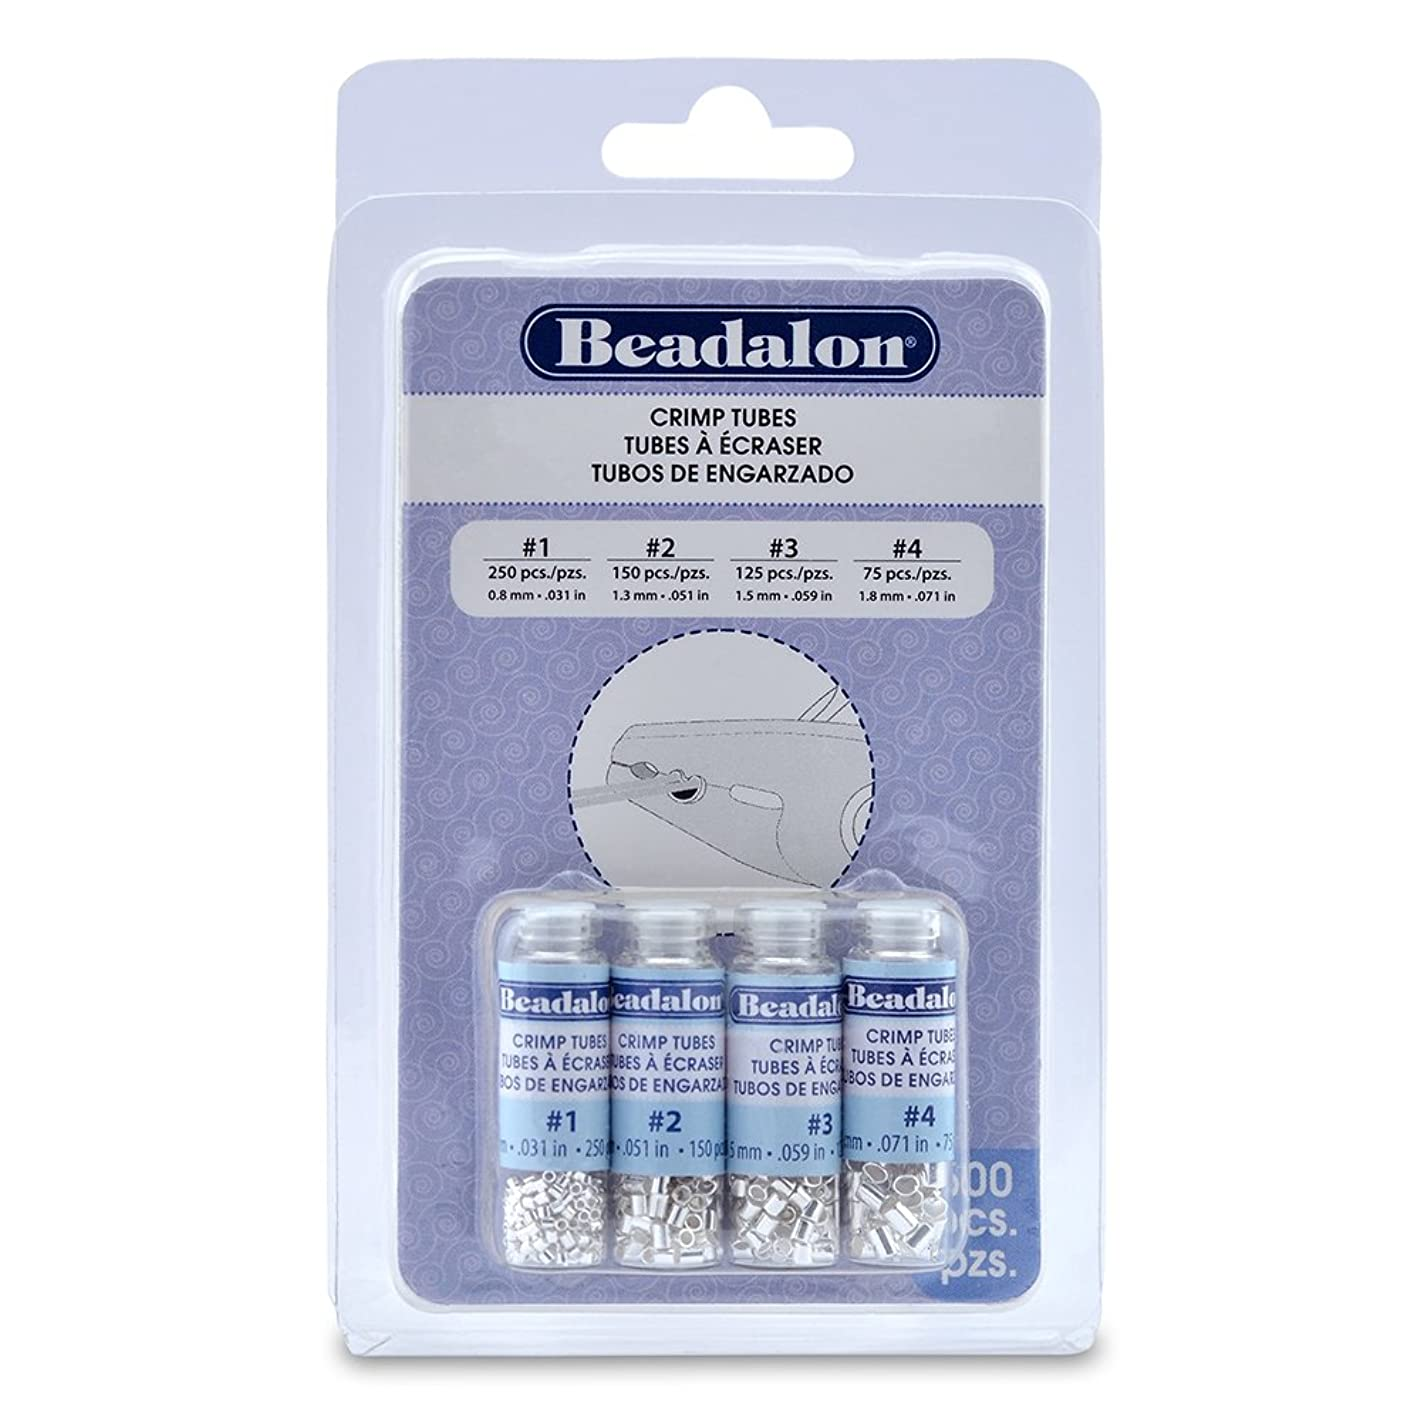 Artistic Wire 305B-121 Beadalon Crimp Tube Variety Pack #1-4 Silver, Plated, 600-Piece